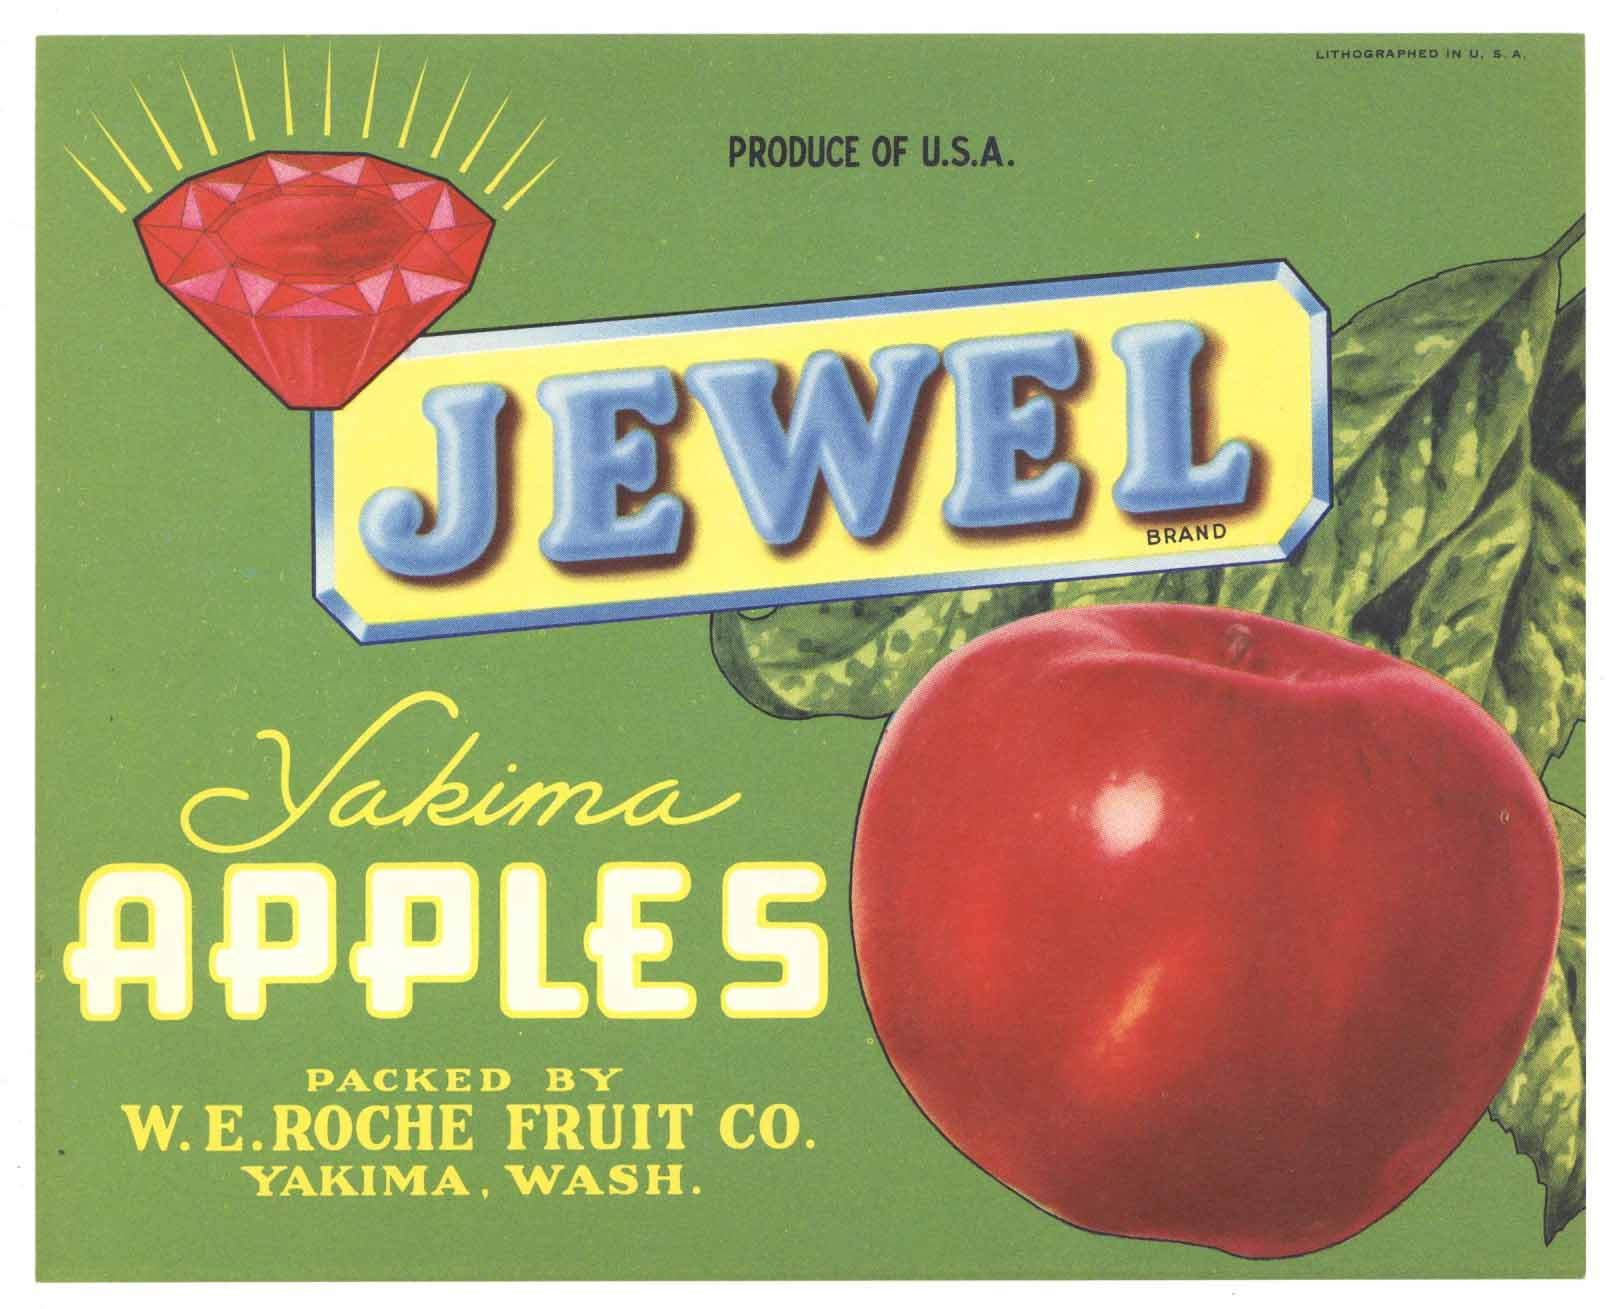 Jewel Brand Vintage Yakima Washington Apple Crate Label, gp